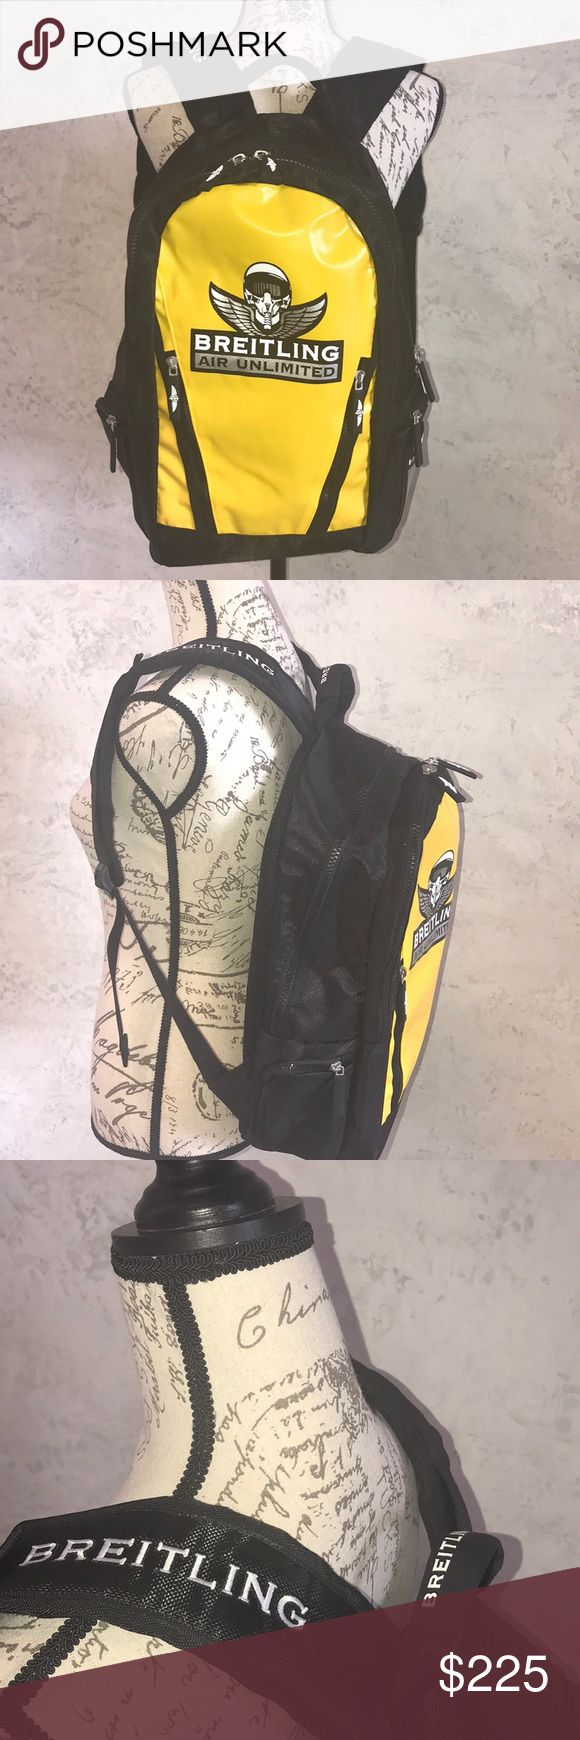 Breitling Backpack Breitling Air Unlimited Yellow/Black Backpack. Brand new. Never used. Breitling Bags Backpacks